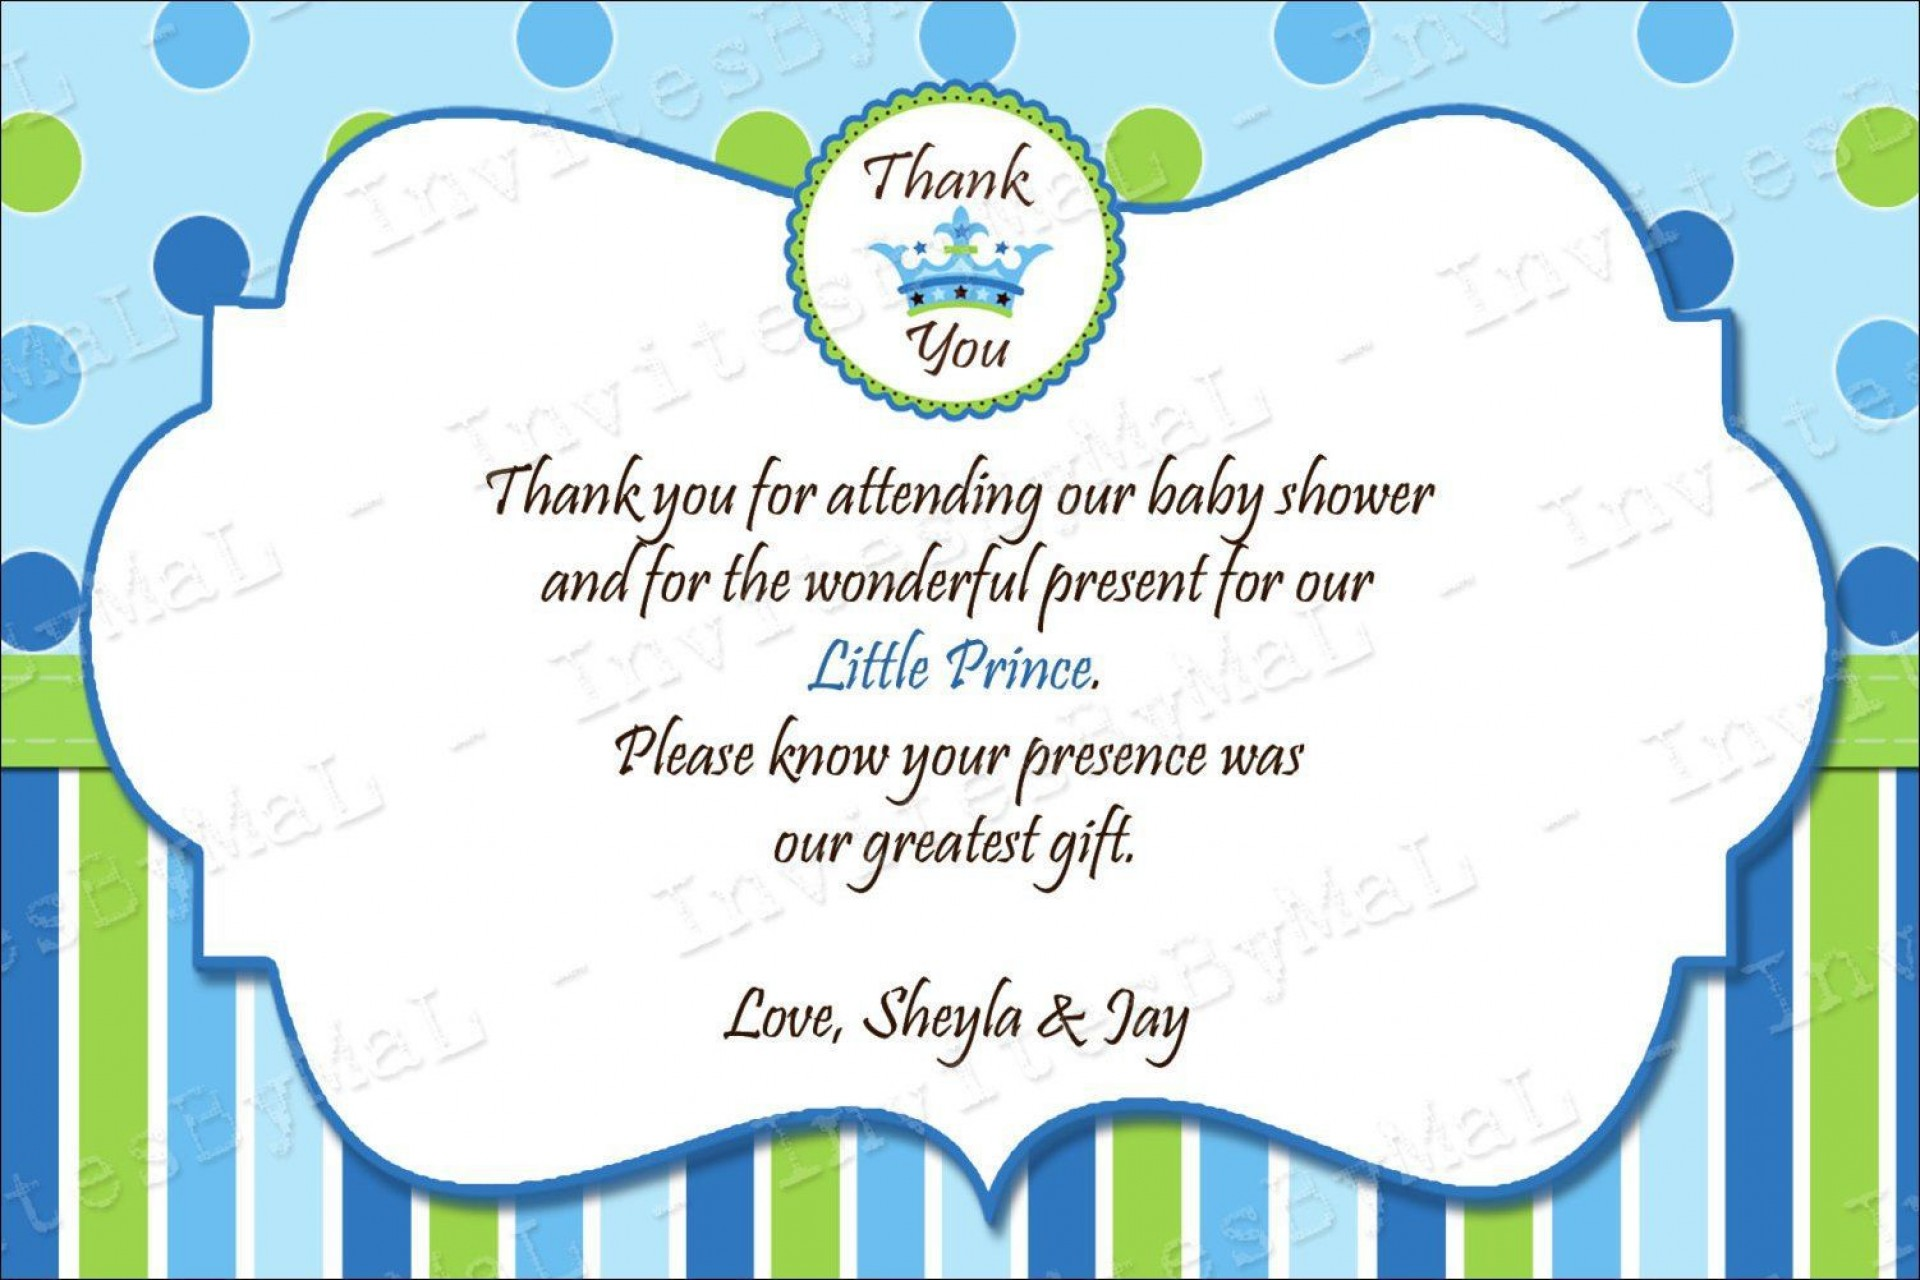 007 Dreaded Thank You Note Template For Baby Shower Gift High Def  Card Letter Sample1920